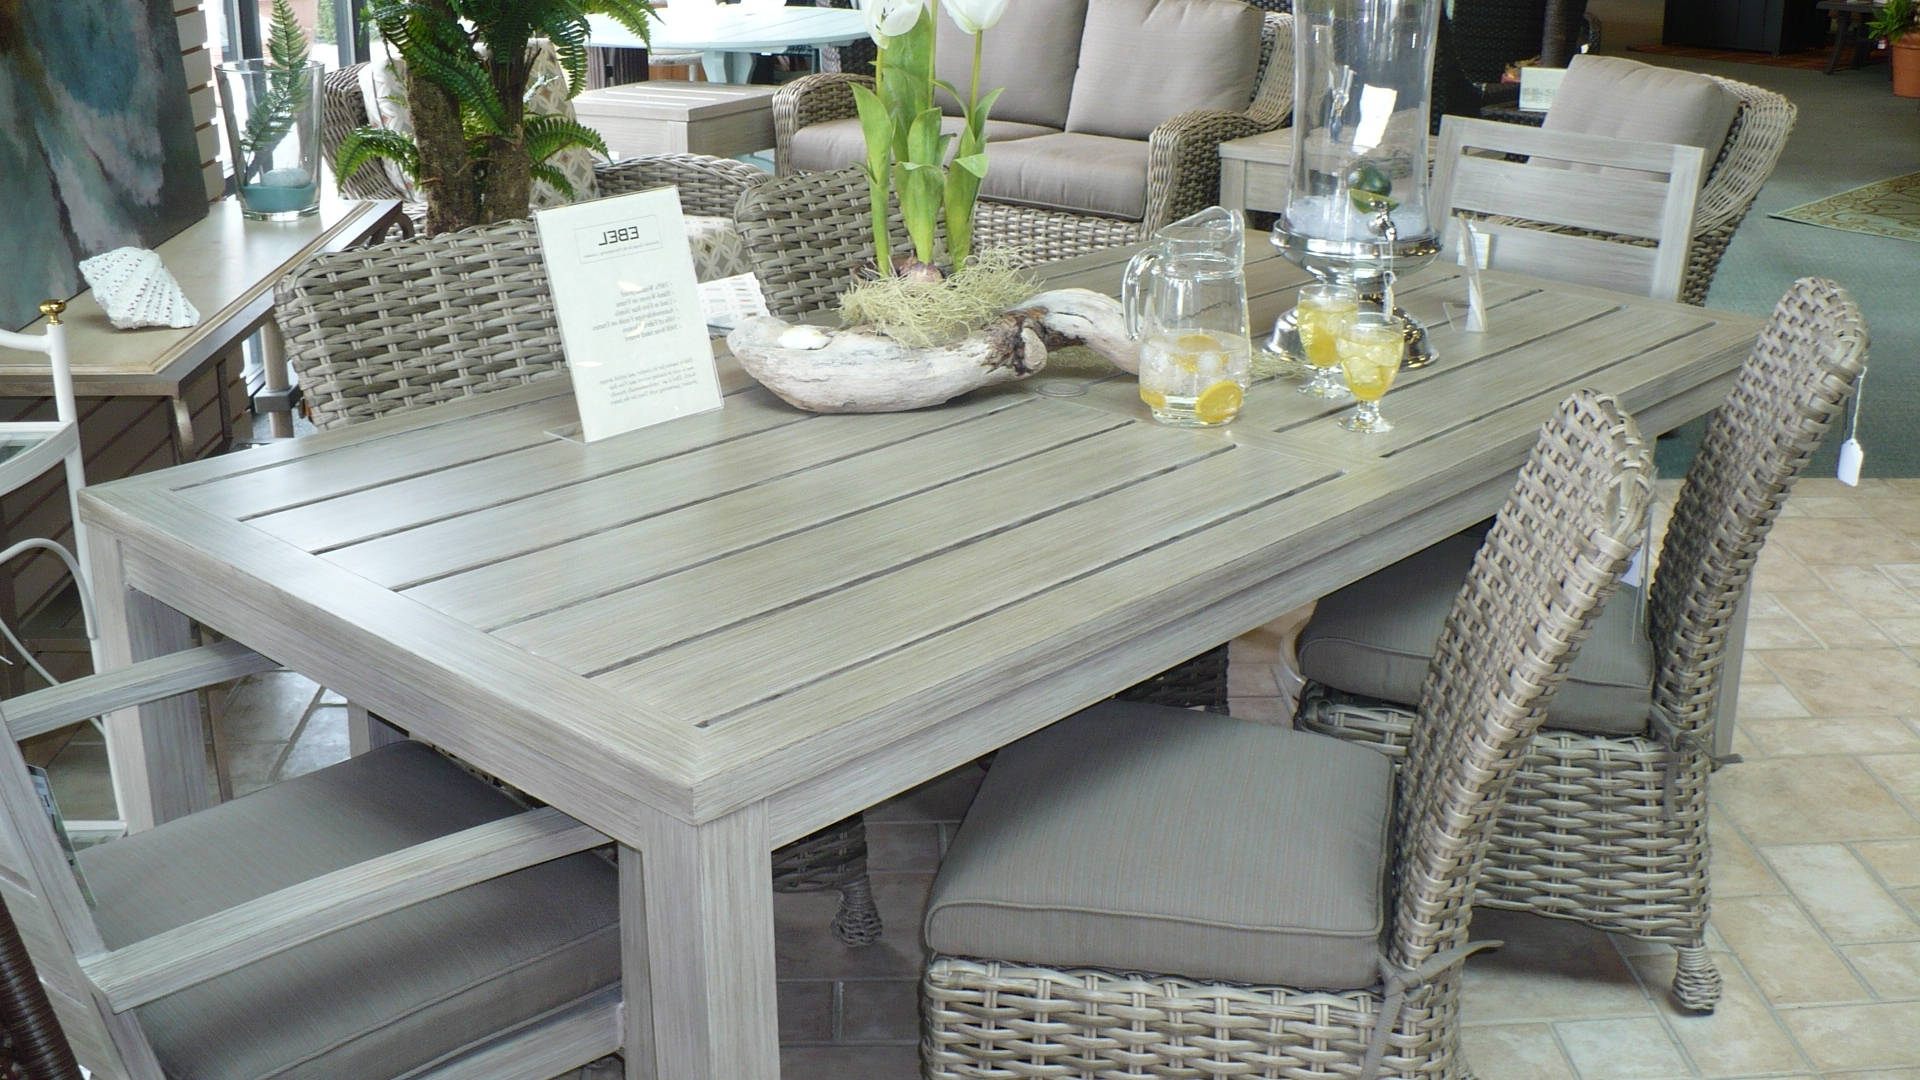 Urgent Gray Wicker Outdoor Furniture New Patio Scheme Hello With Regard To Fashionable Gray Patio Conversation Sets (View 6 of 20)